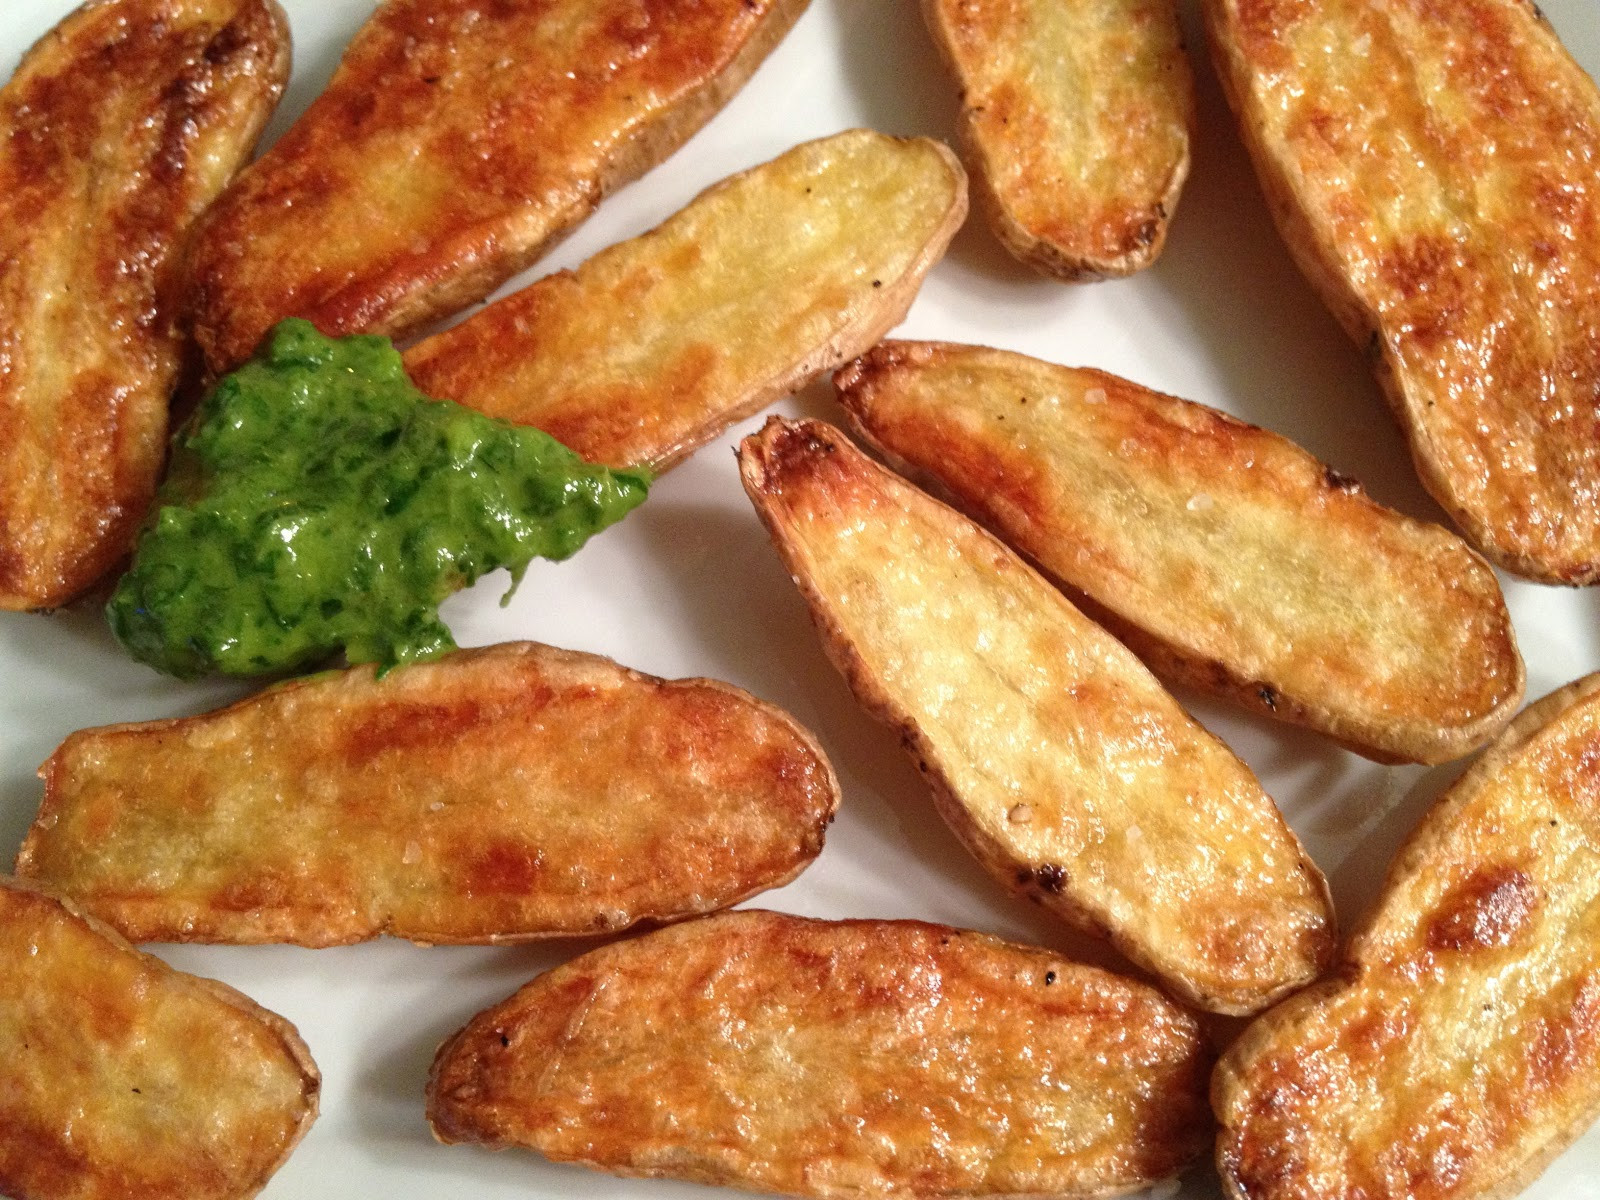 Fingerling Potato Recipes  Roasted Fingerling Potatoes with Chive Dipping Sauce